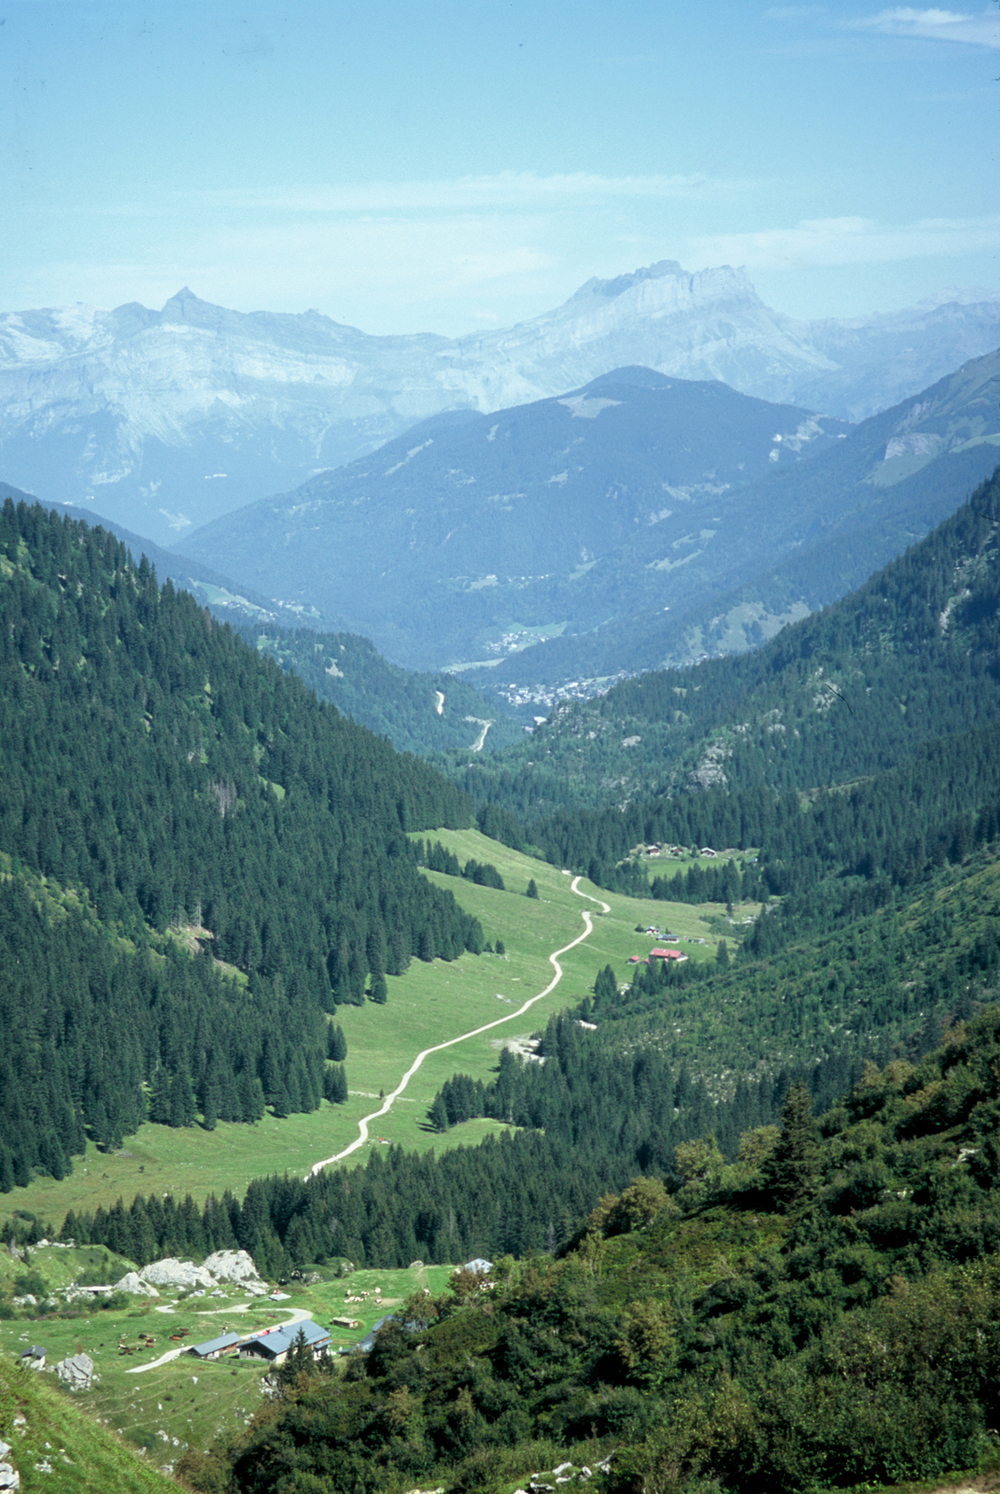 The Tour du Mont Blanc winds through many valleys of the Mont Blanc region of France, Italy, and Switzerland.